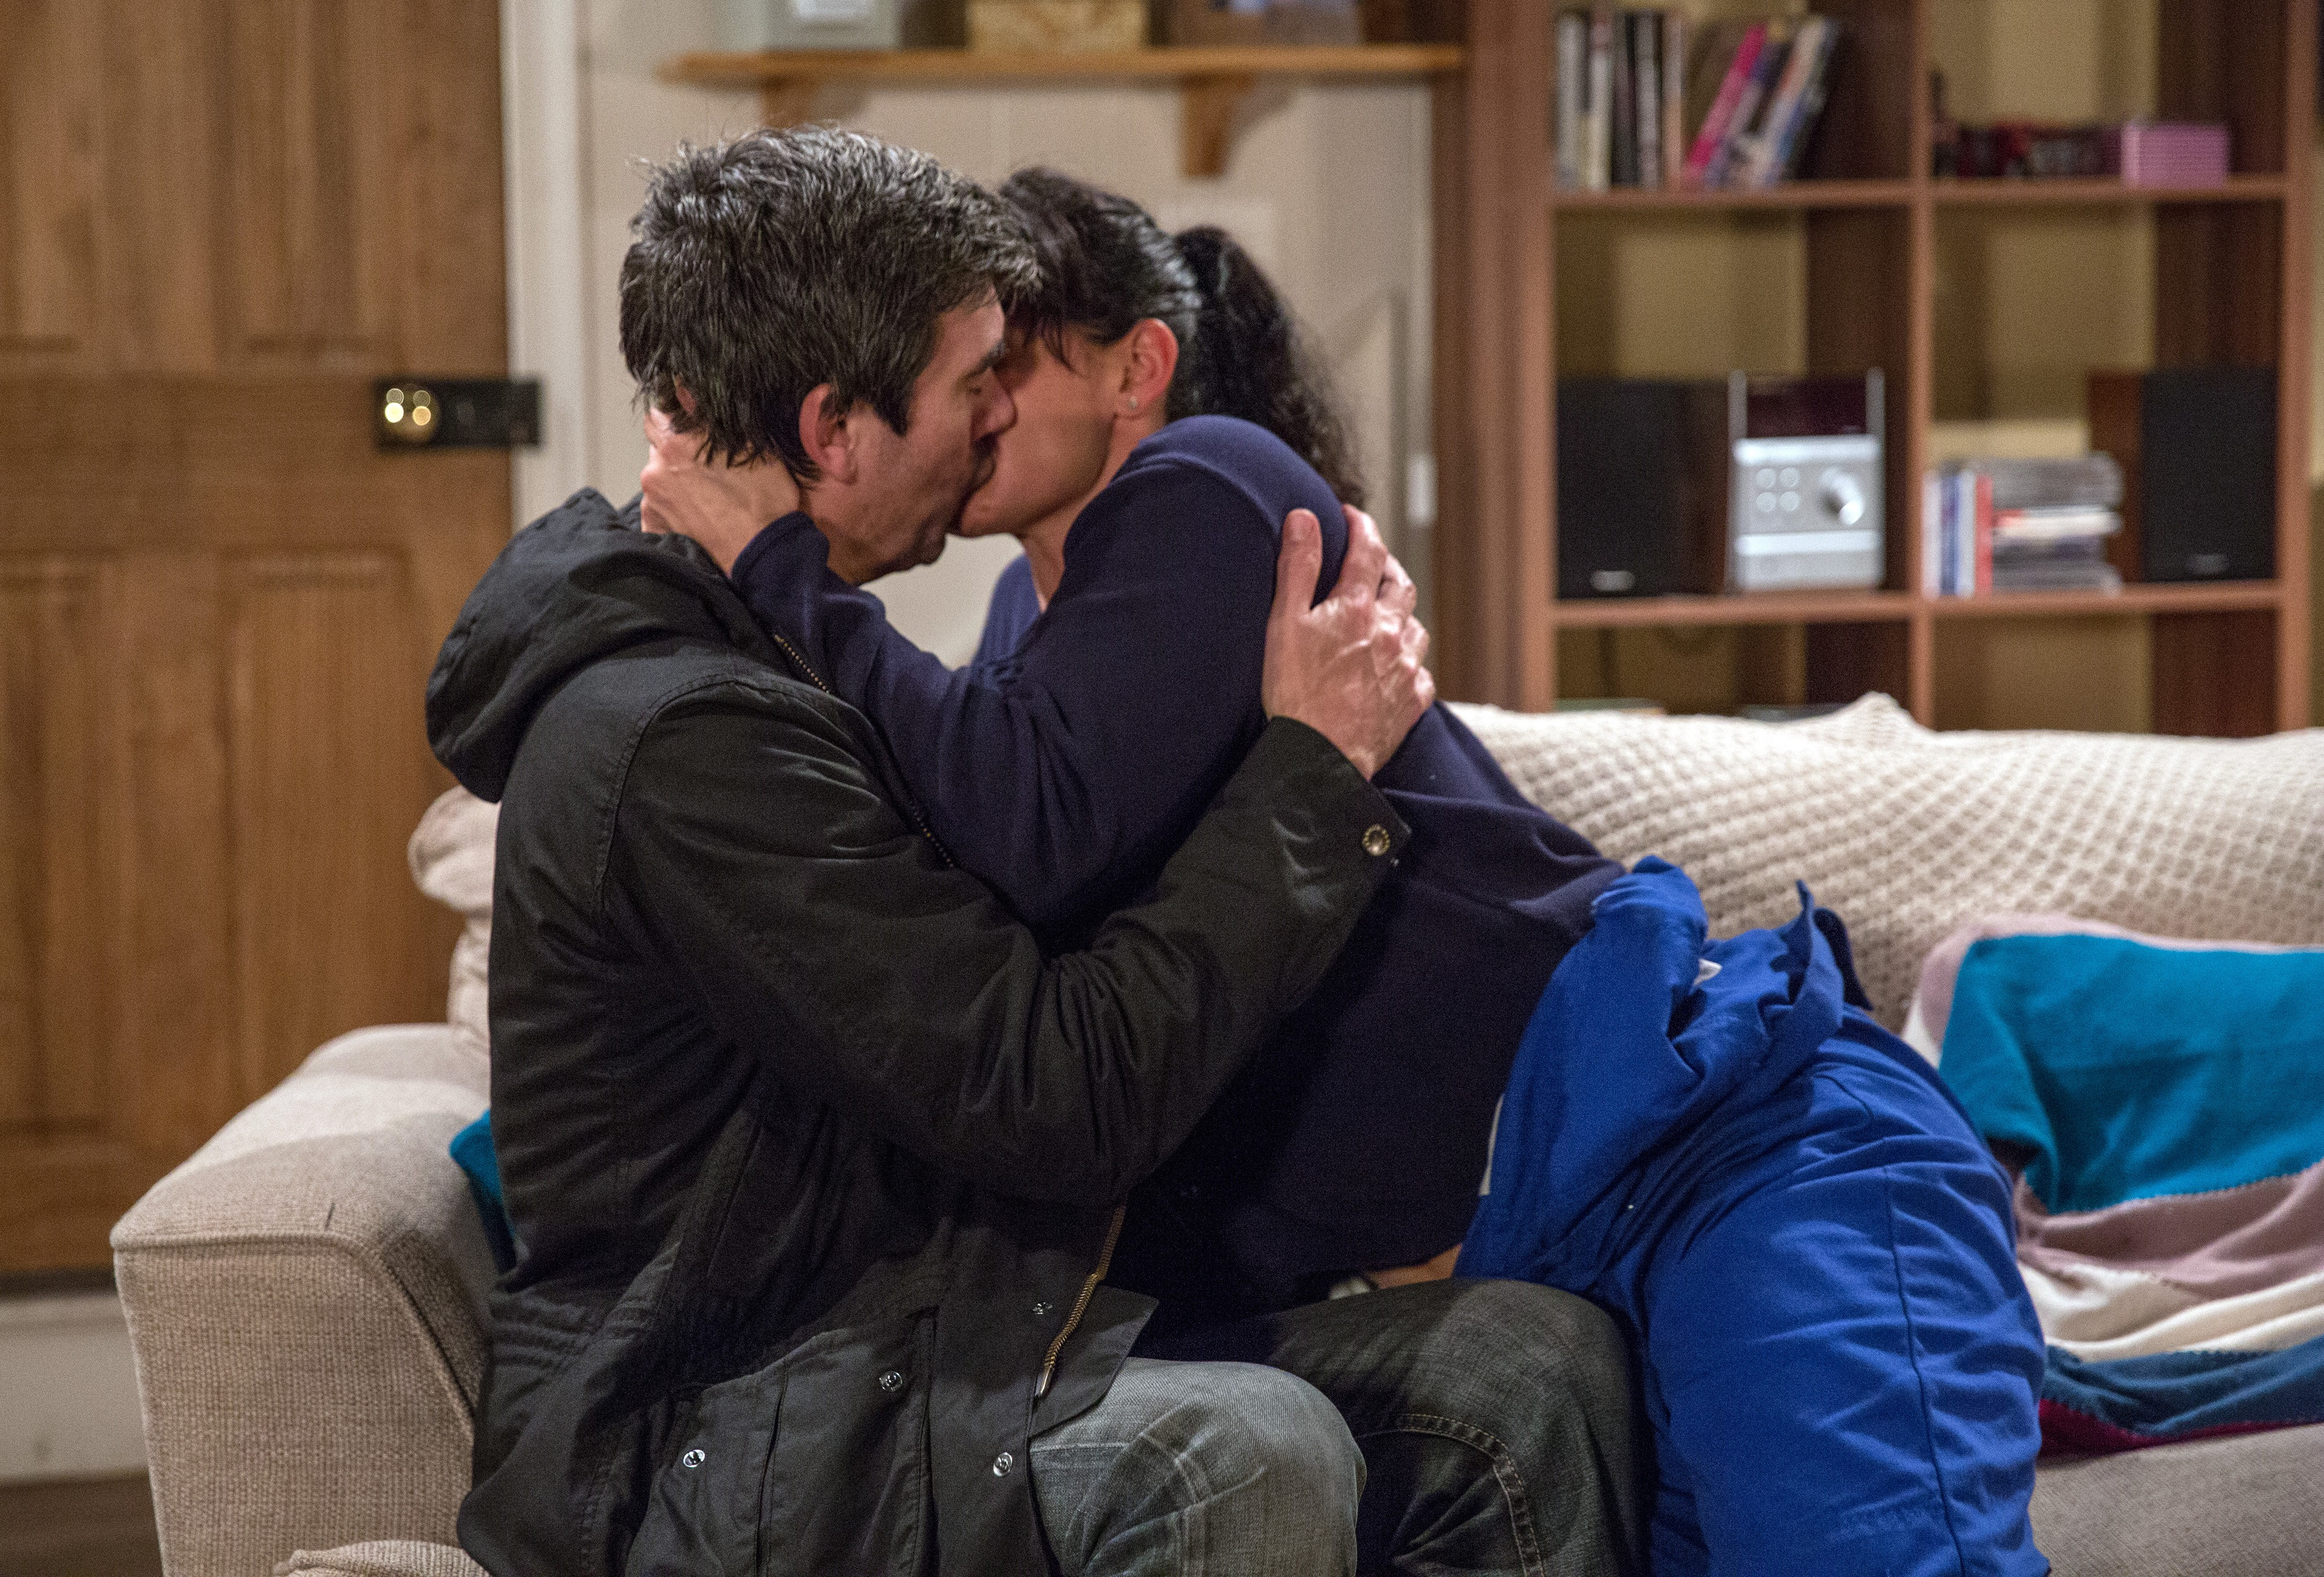 FROM ITV   STRICT EMBARGO  Print media - No Use Before Tuesday 9th January 2018 Online Media -  No Use Before 0700hrs Tuesday 9th January 2018  Emmerdale - 8044  Tuesday 16th January 2018   Cain Dingle [JEFF HORDLEY] comes to the farm and he and Moira Dingle [NATALIE J ROBB], kiss passionately but what does this this mean for their future and Harriet's?   Picture contact - david.crook@itv.com  Photographer - Amy Brammall  This photograph is (C) ITV Plc and can only be reproduced for editorial purposes directly in connection with the programme or event mentioned above, or ITV plc. Once made available by ITV plc Picture Desk, this photograph can be reproduced once only up until the transmission [TX] date and no reproduction fee will be charged. Any subsequent usage may incur a fee. This photograph must not be manipulated [excluding basic cropping] in a manner which alters the visual appearance of the person photographed deemed detrimental or inappropriate by ITV plc Picture Desk. This photograph must not be syndicated to any other company, publication or website, or permanently archived, without the express written permission of ITV Plc Picture Desk. Full Terms and conditions are available on the website www.itvpictures.com